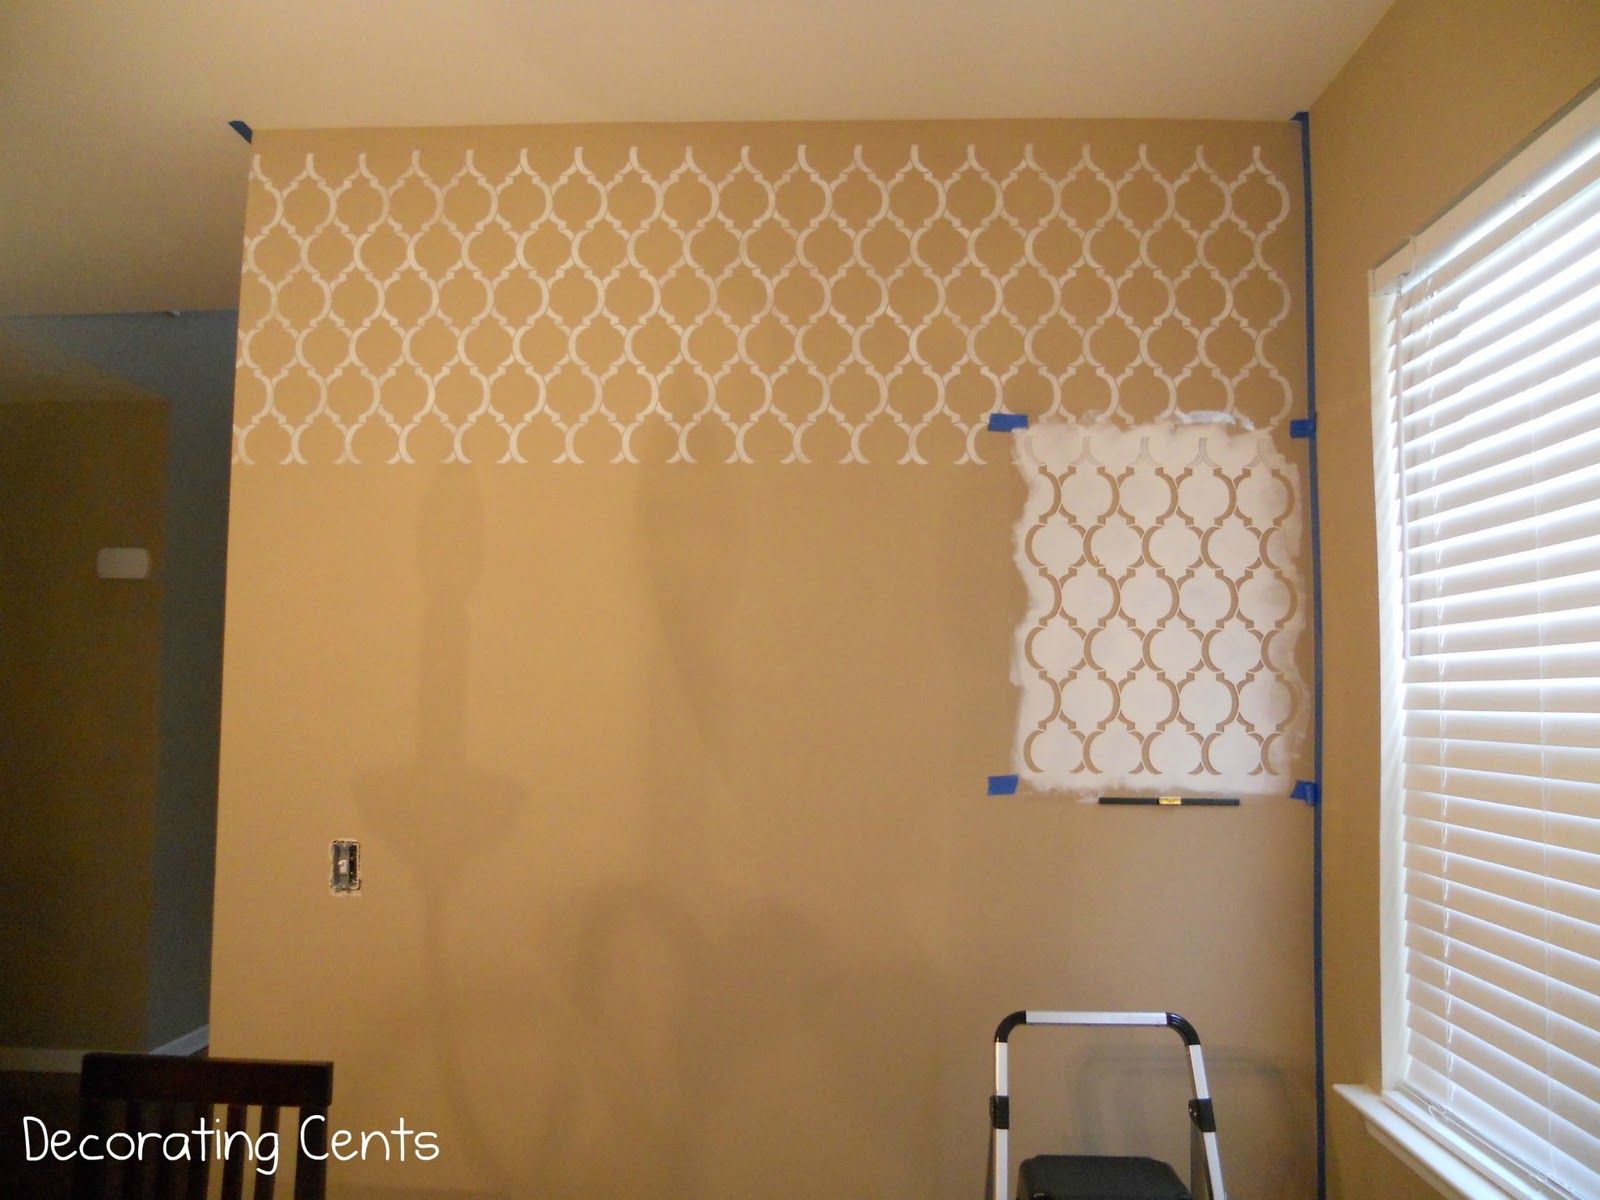 Design Stencils For Walls: Decorating Cents: A Stenciled Wall